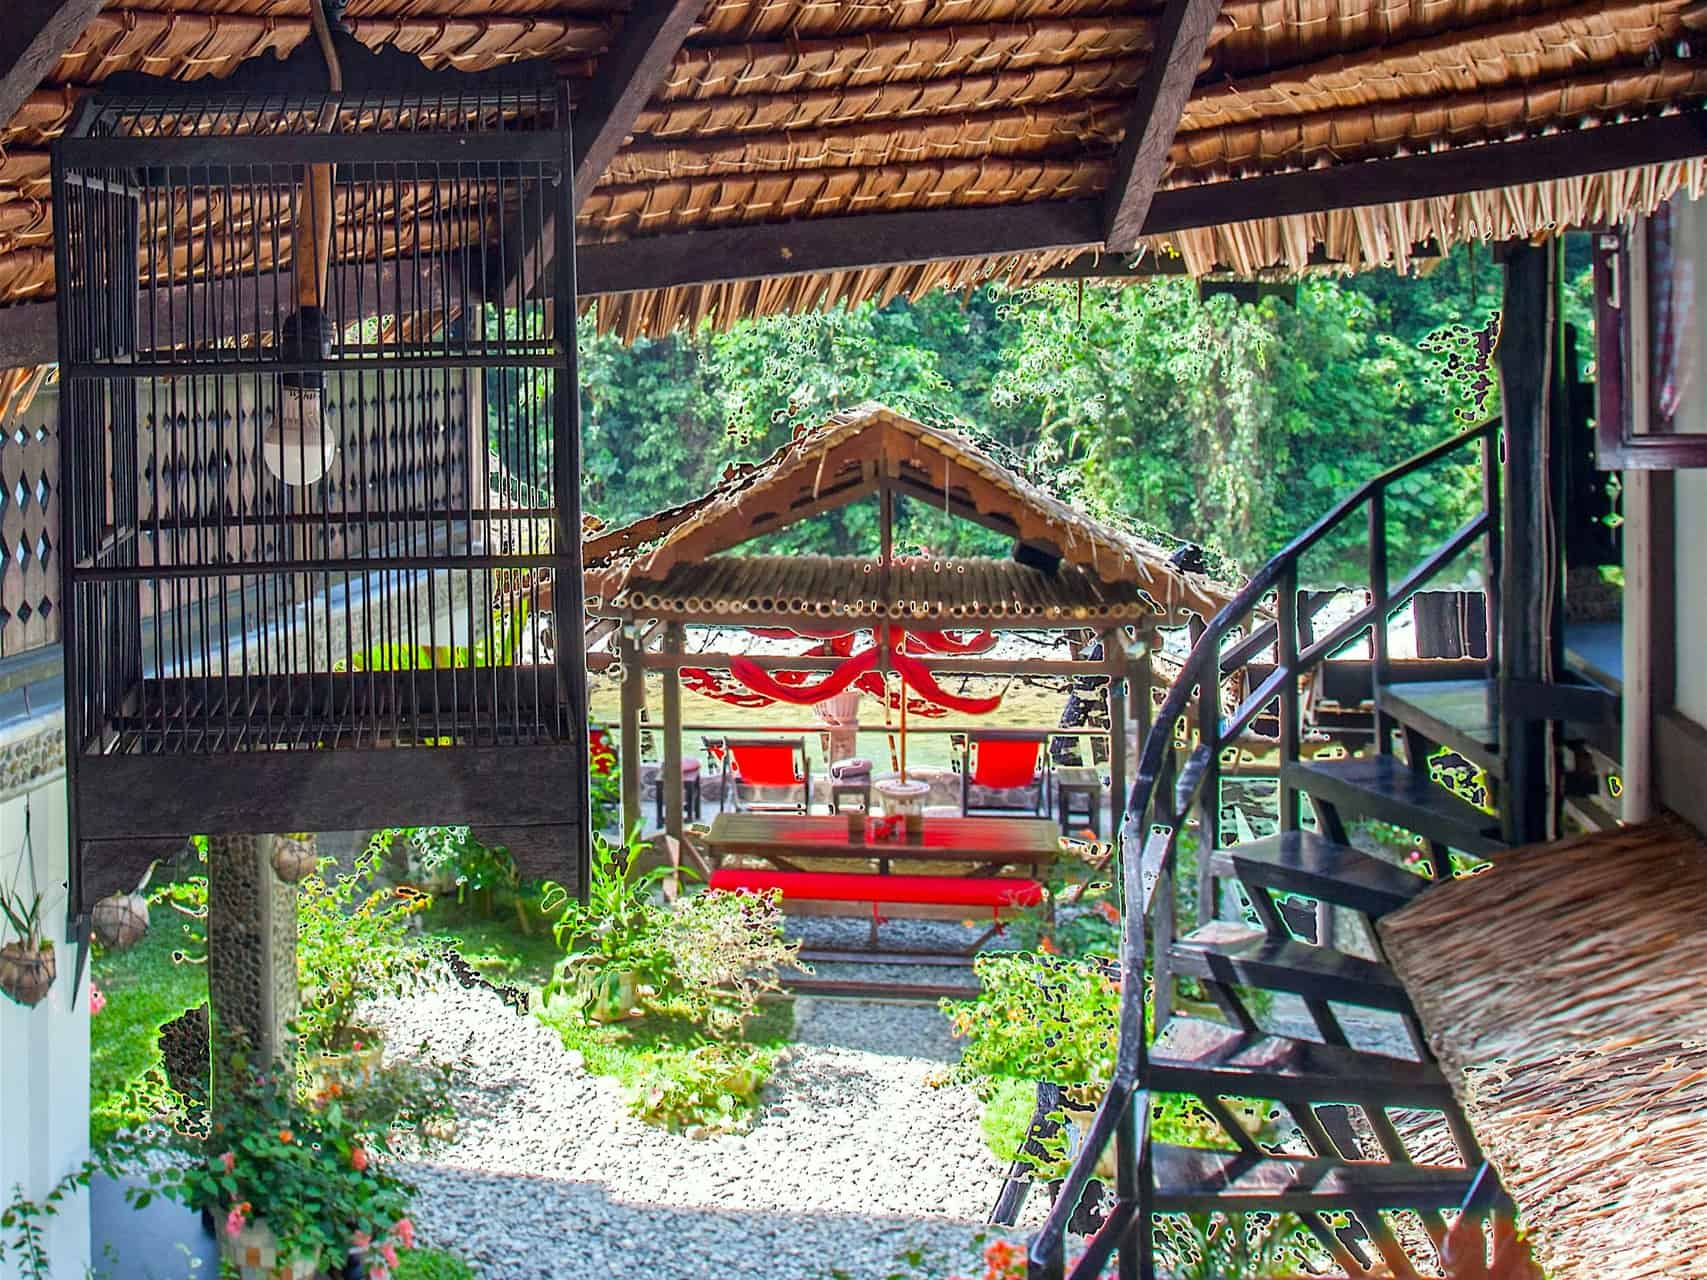 BUDGET ROOM IN BUKIT LAWANG - VIEW FROM THE BALCONY OF BATAK ROOM AT ECOTRAVEL COTTAGES - SUMATRA ECOTRAVEL